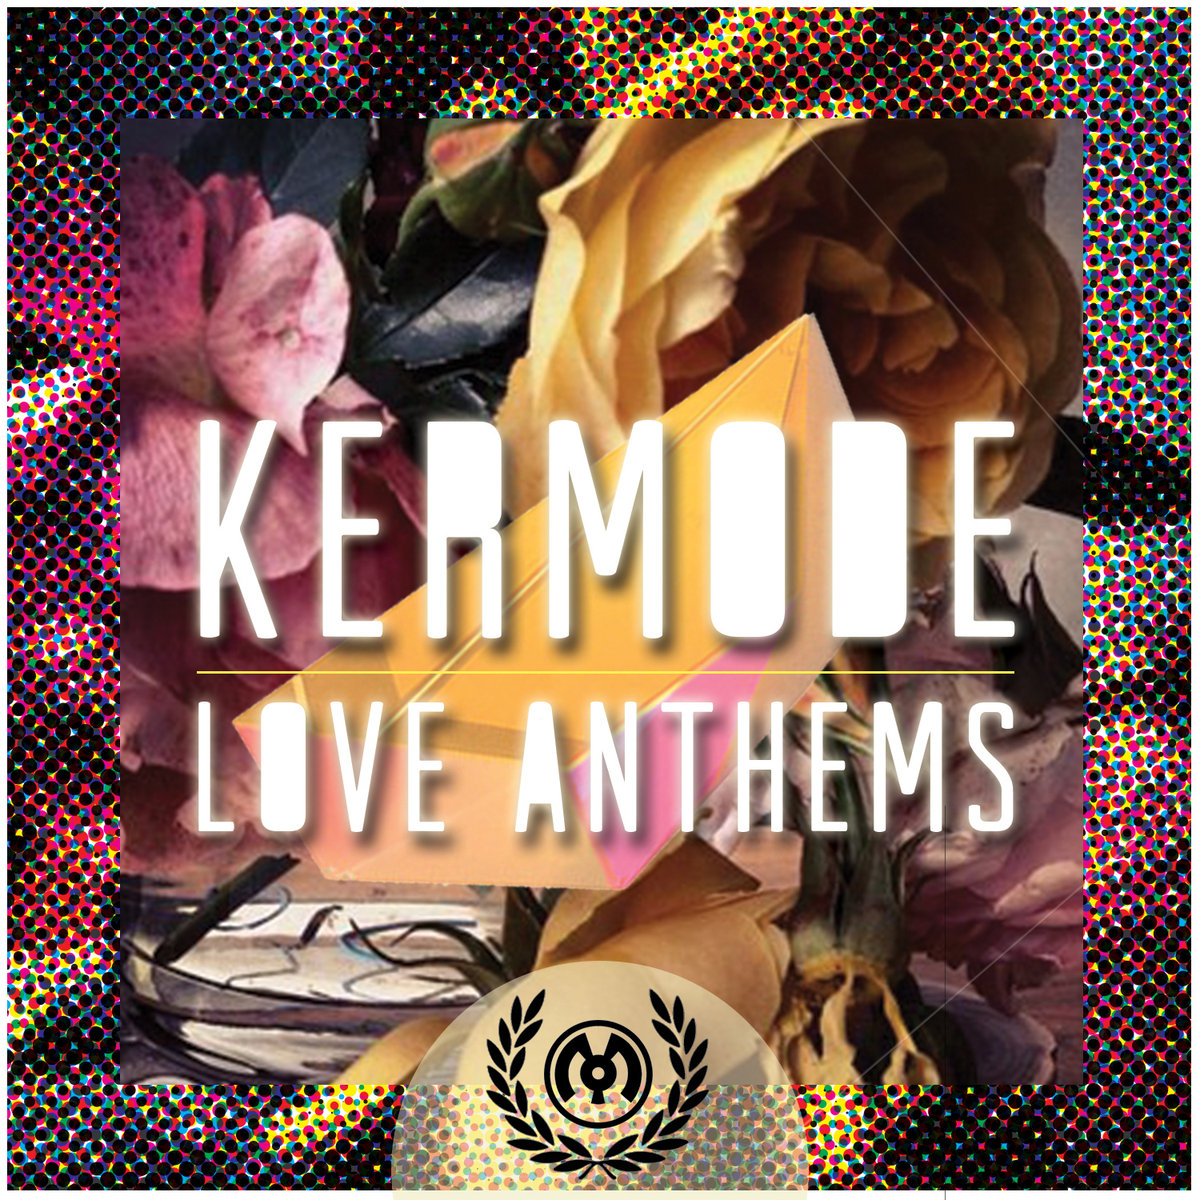 Kermode - You Are The Adventure @ 'Love Anthems' album (electronic, dubstep)